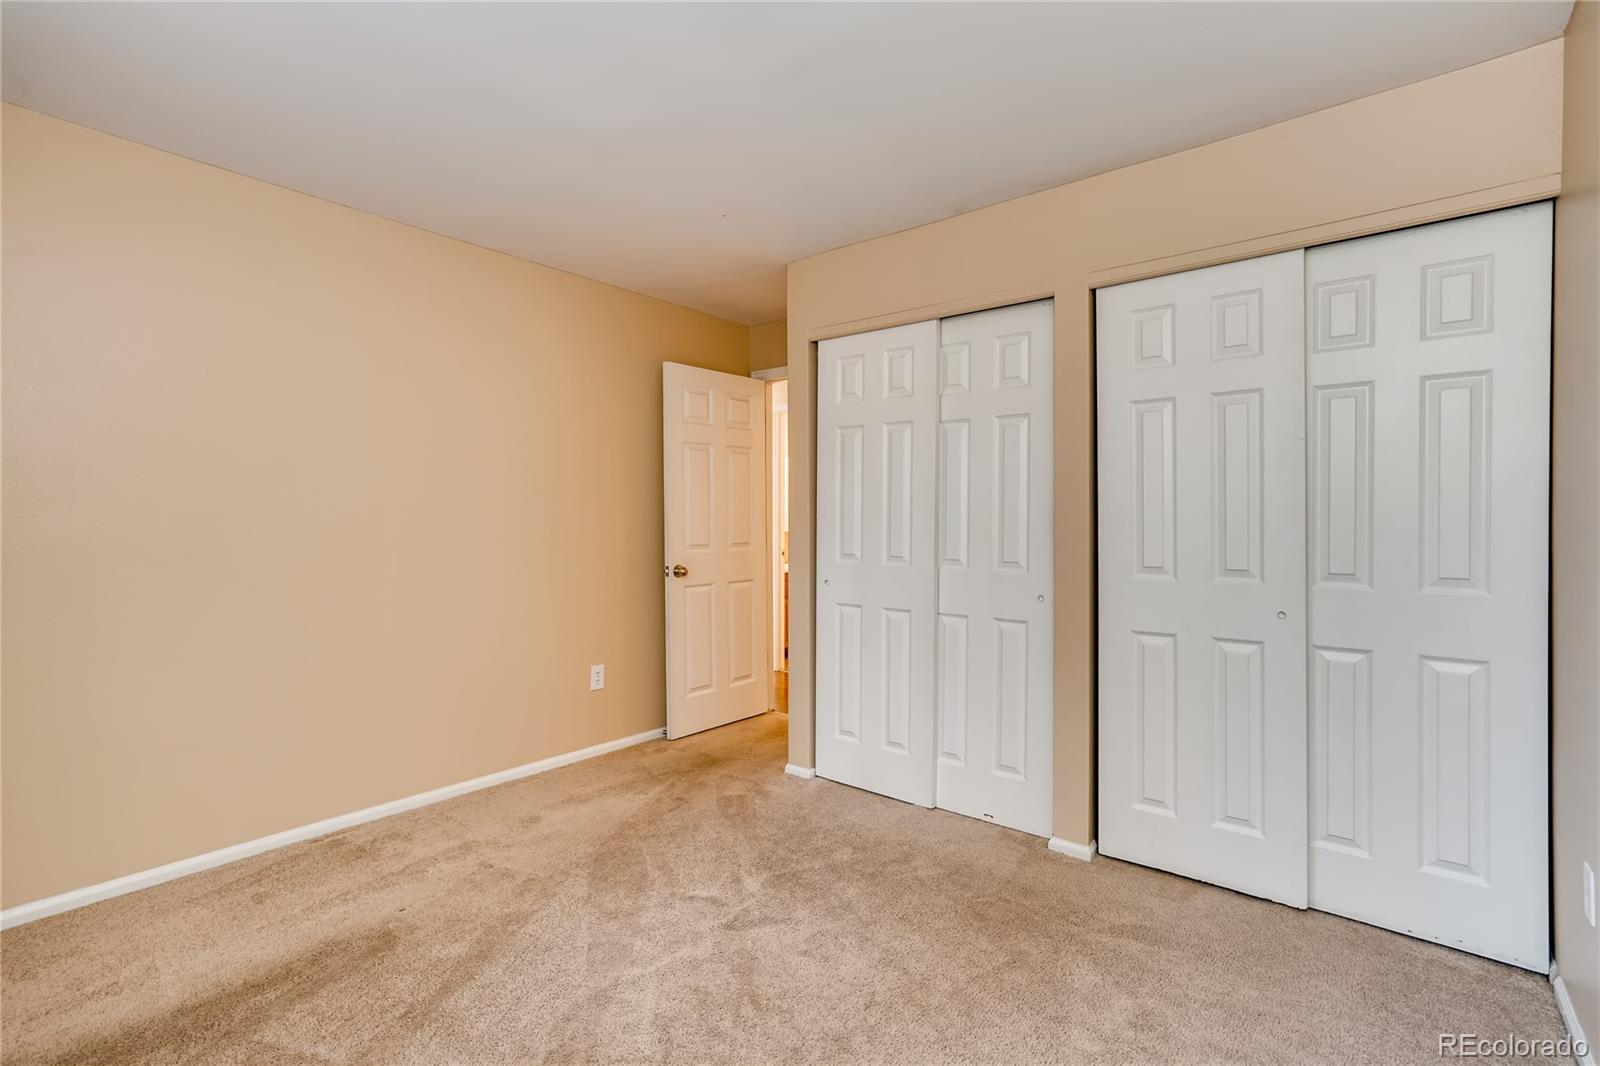 MLS# 6714692 - 20 - 4371 S Andes Way #201, Aurora, CO 80015